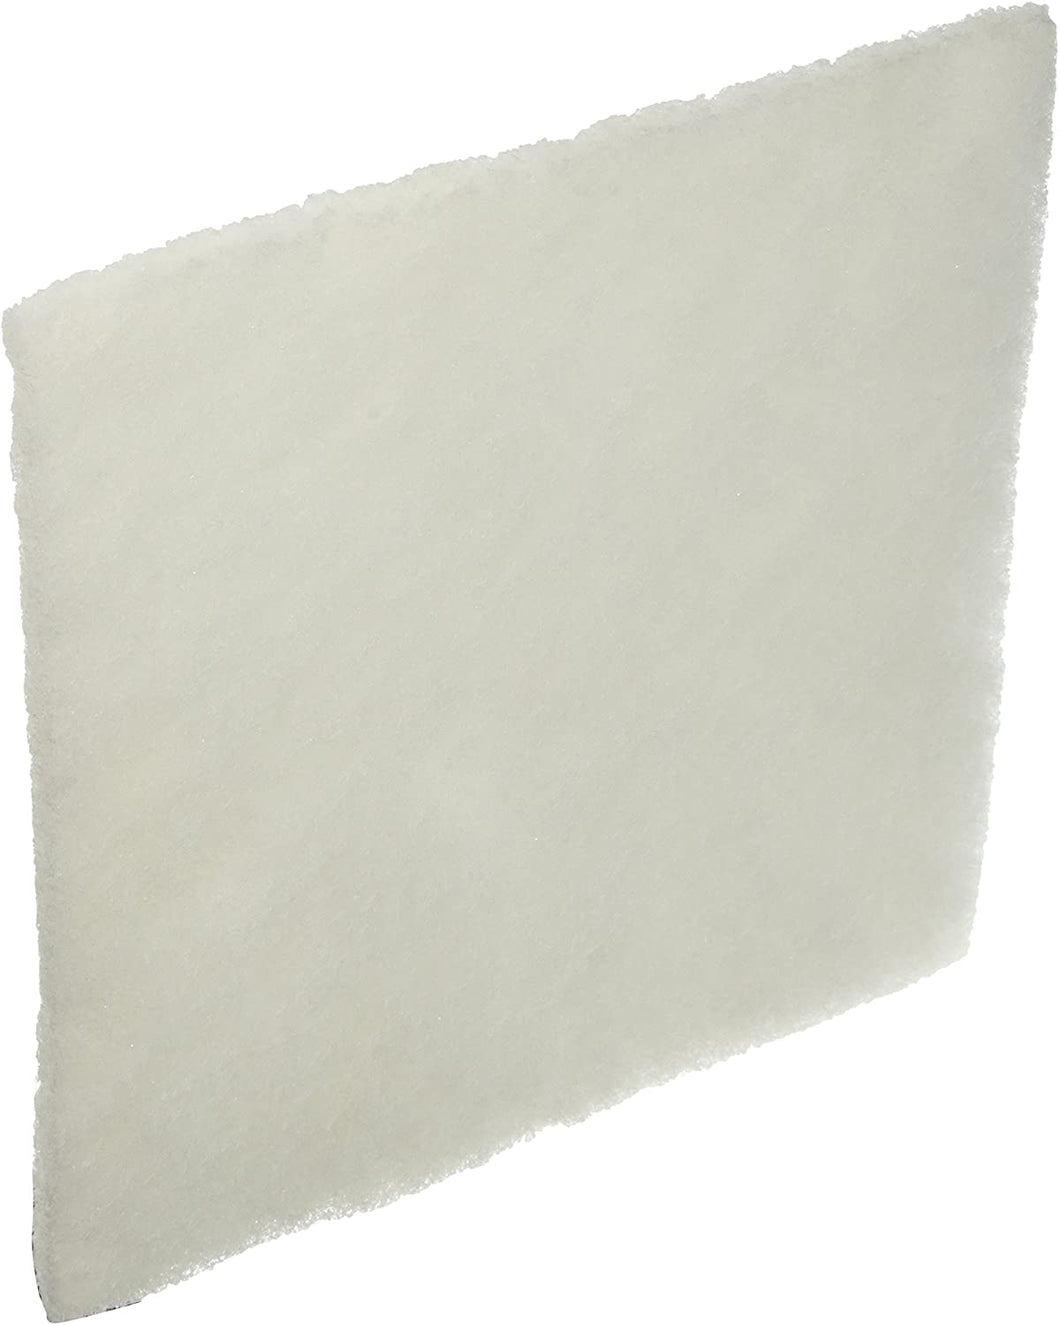 Poly Filter Pad 10